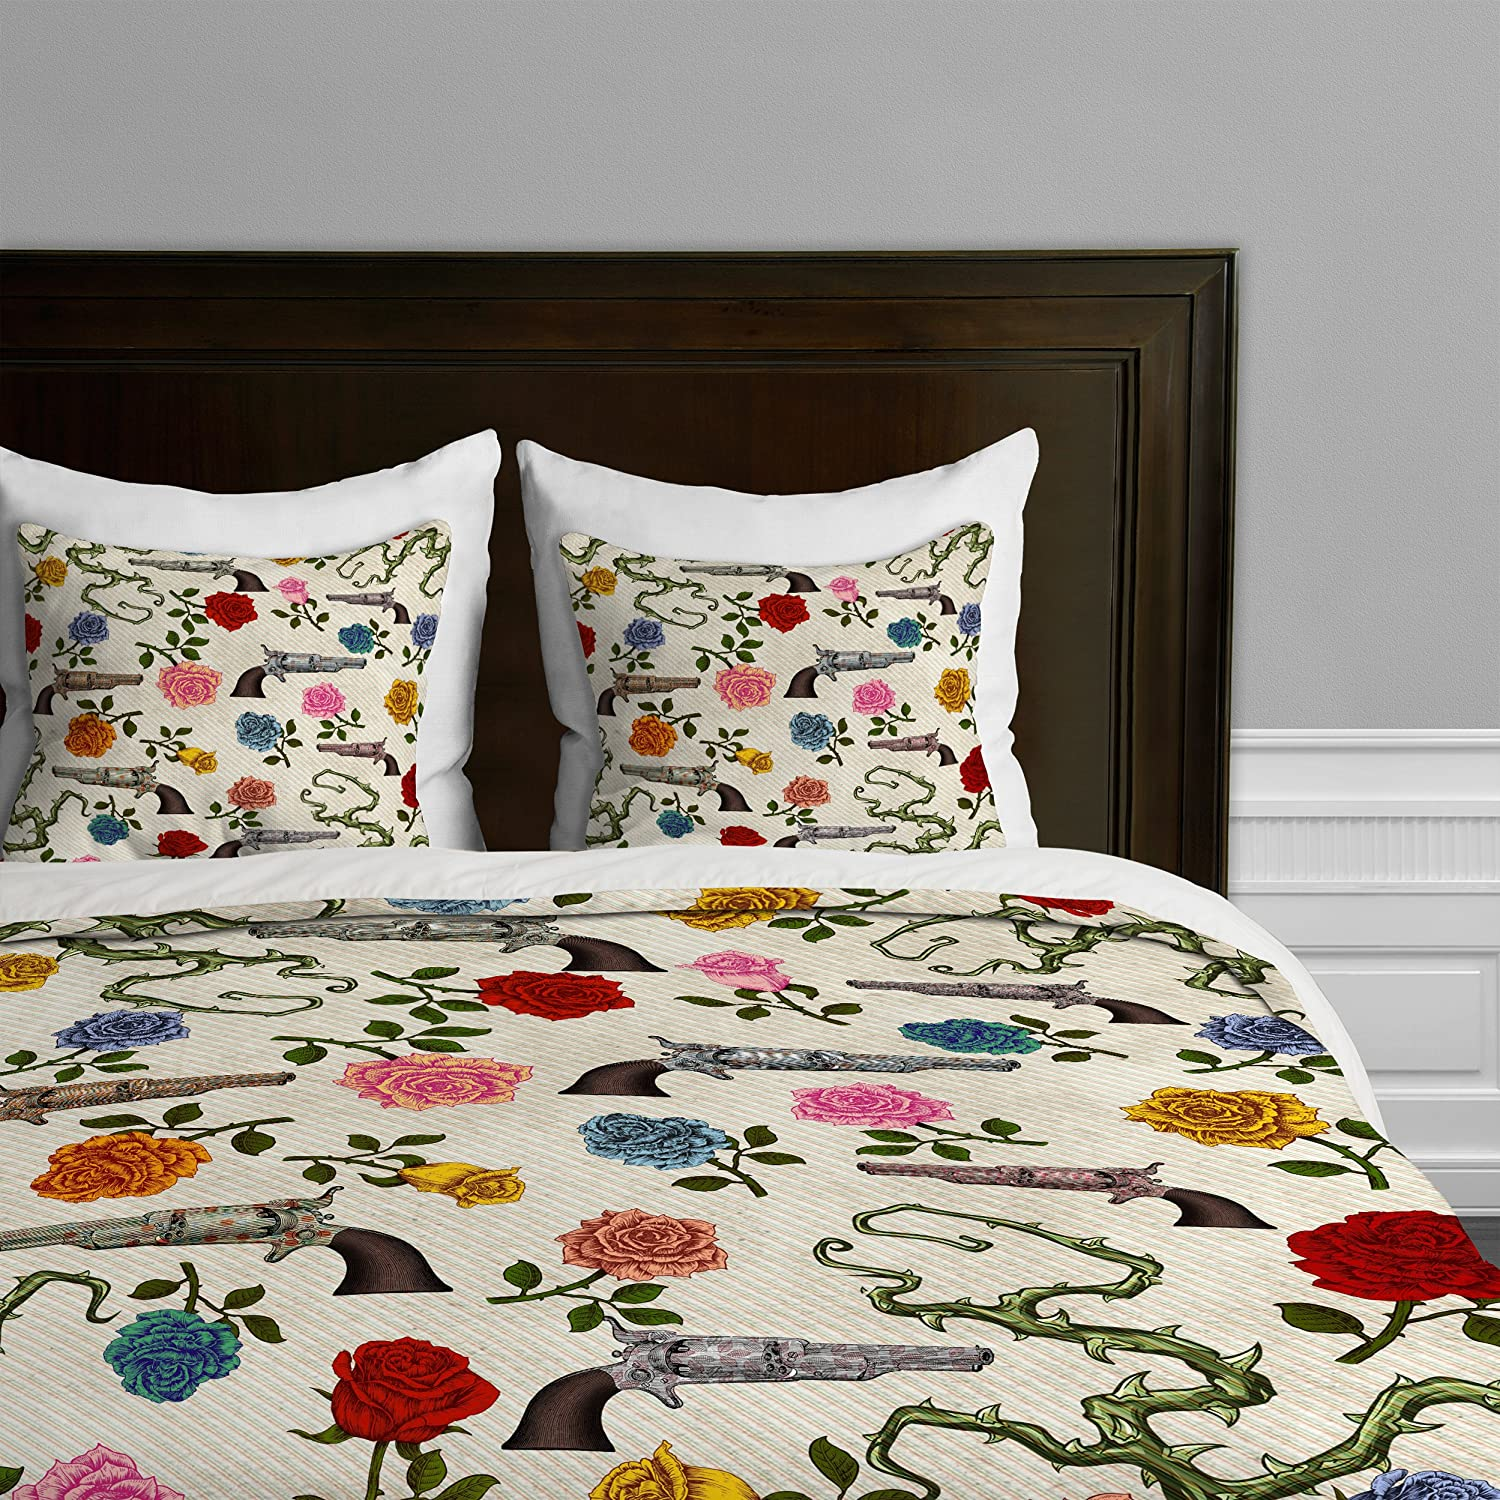 Amazon belle13 sweet guns and roses duvet cover home kitchen gumiabroncs Choice Image